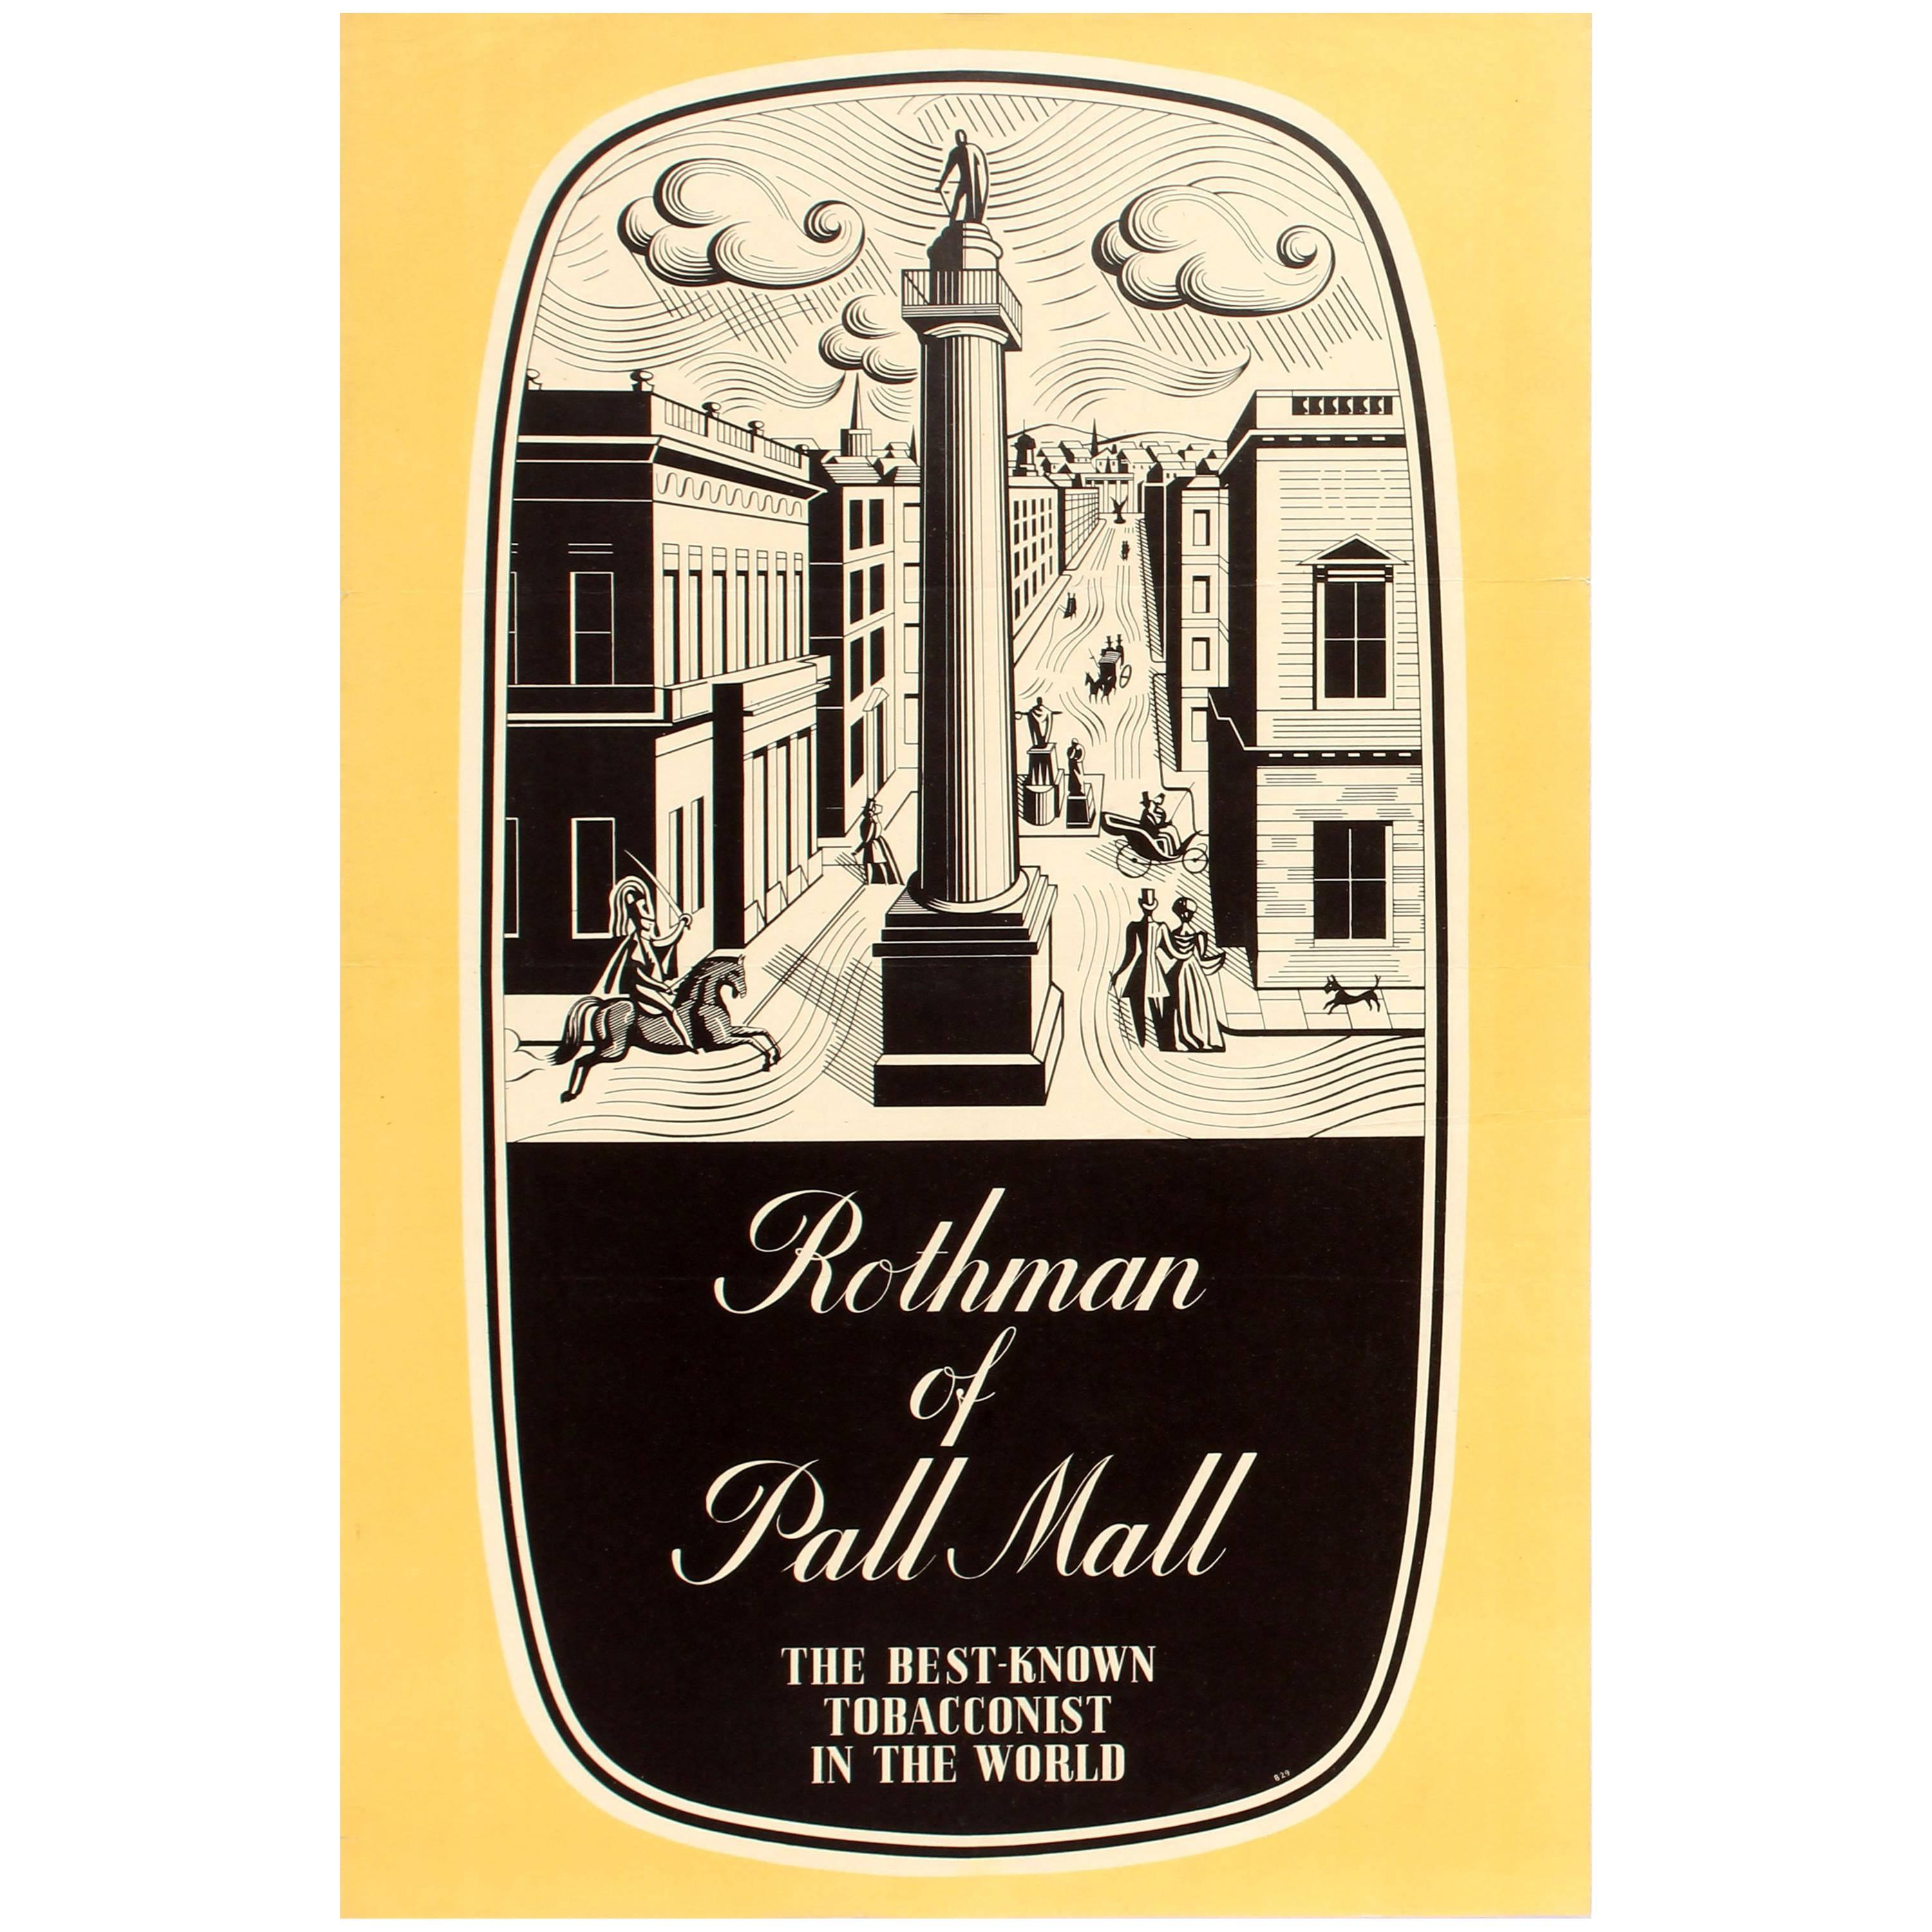 Original Vintage Rothmans Poster Advertising Rothman Of Pall Mall  Tobacconist For Sale